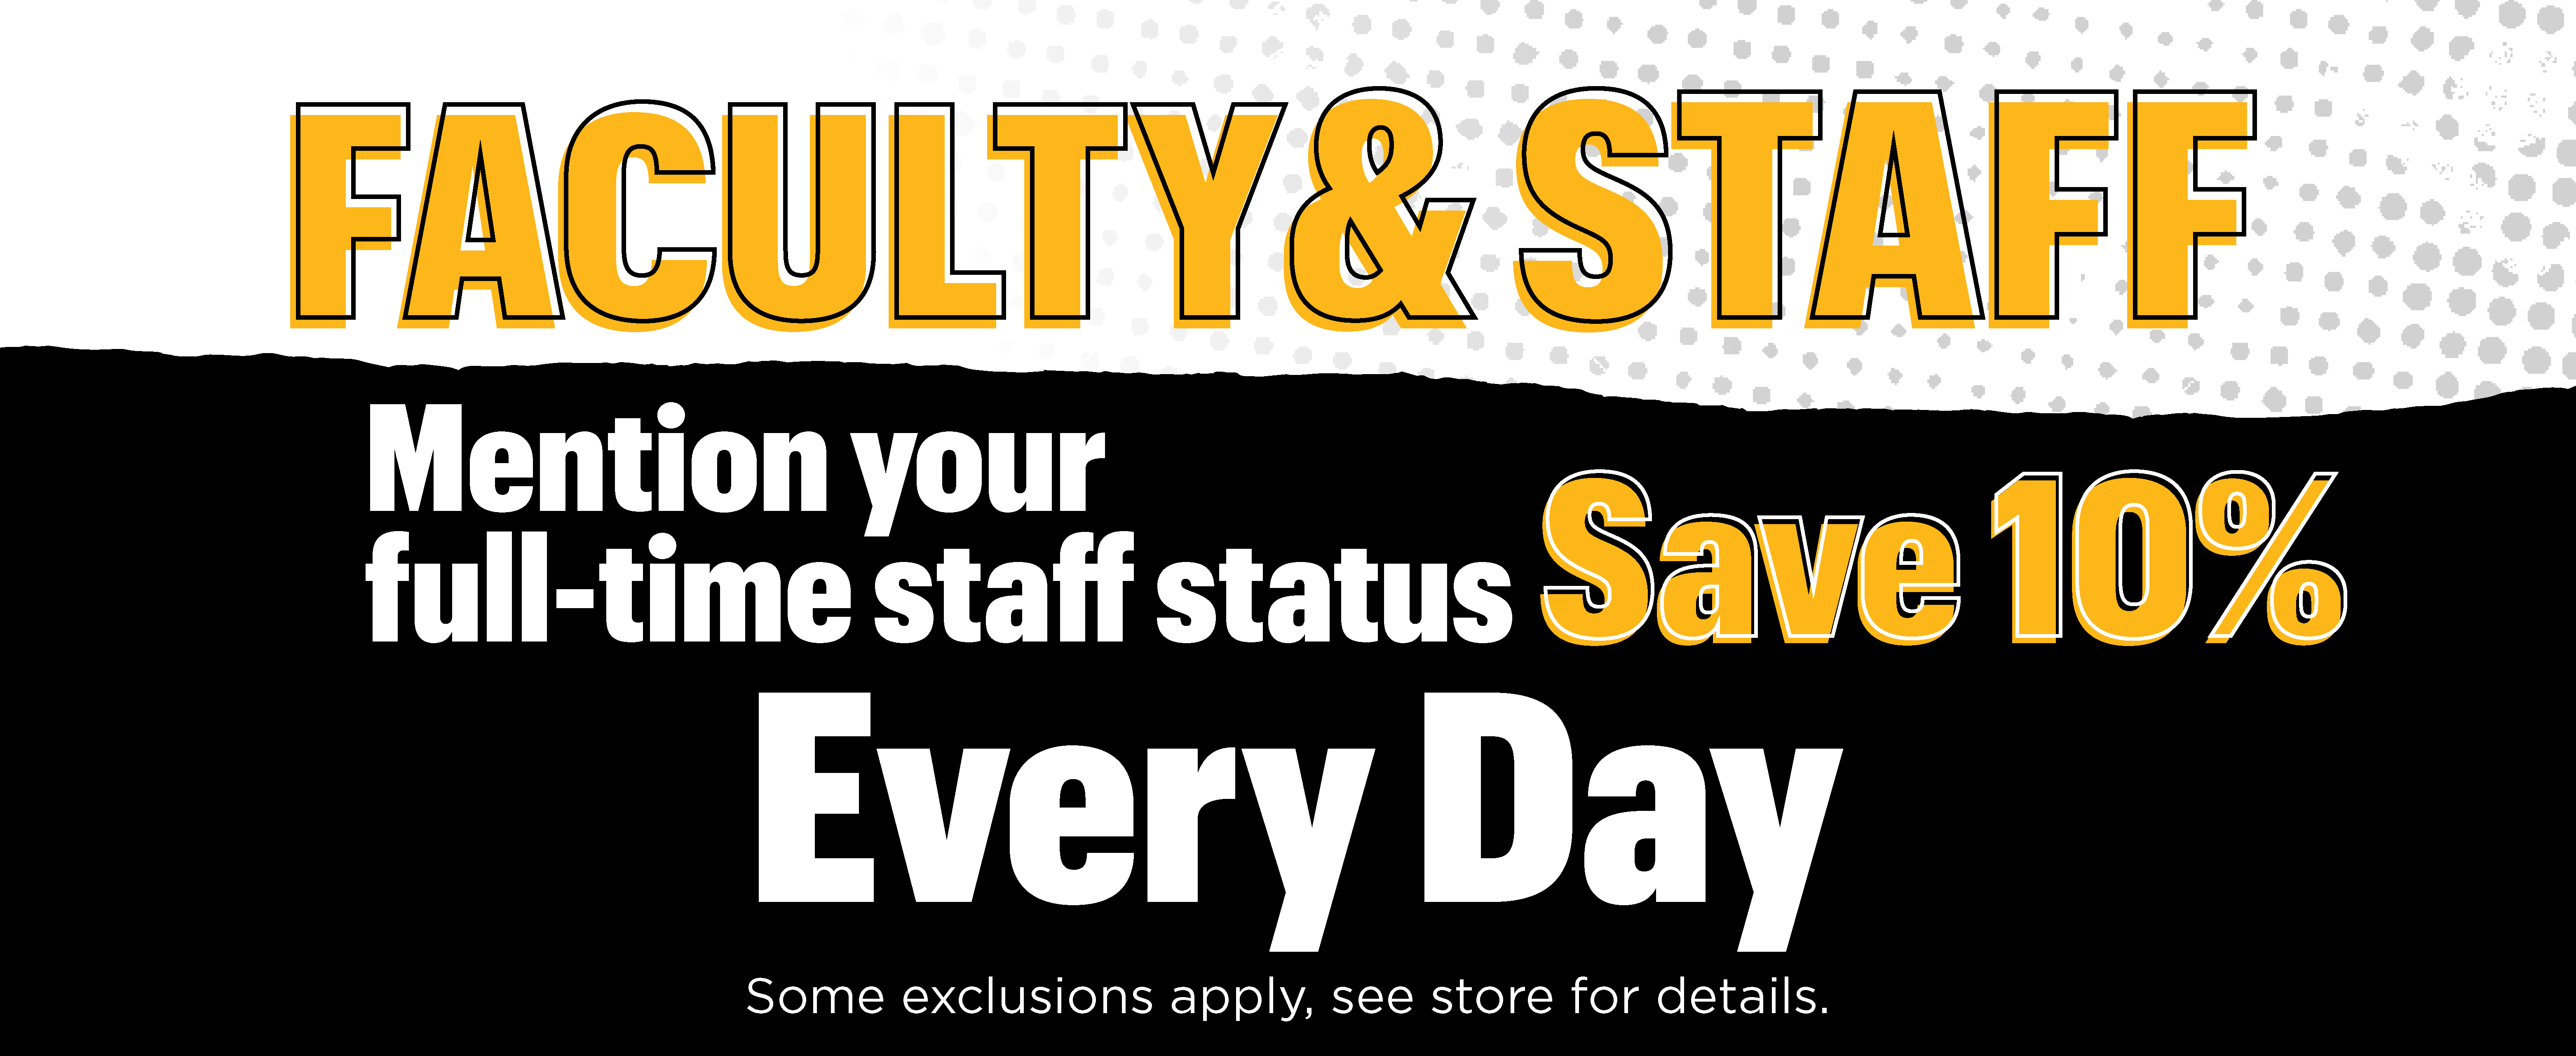 10% discount for full time staff - see store for details